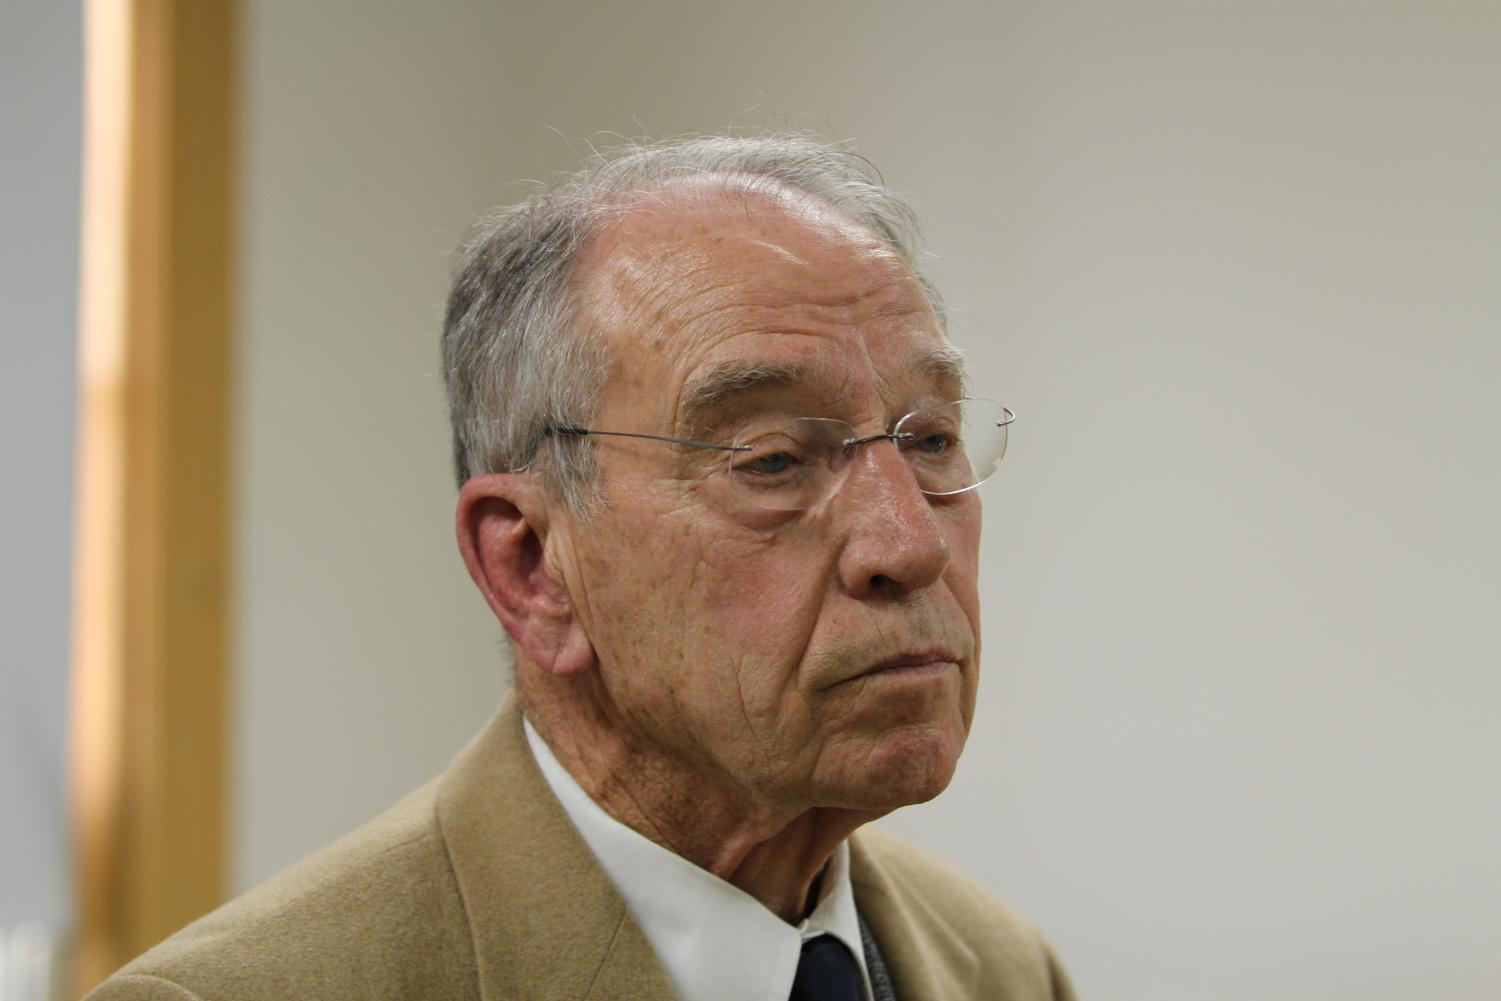 Grassley+stated+in+the+press+conference+that+reimplementing+the+Federal+Assault+Weapons+Ban+of+1994+would+not+effectively+stop+school+shootings+from+happening.